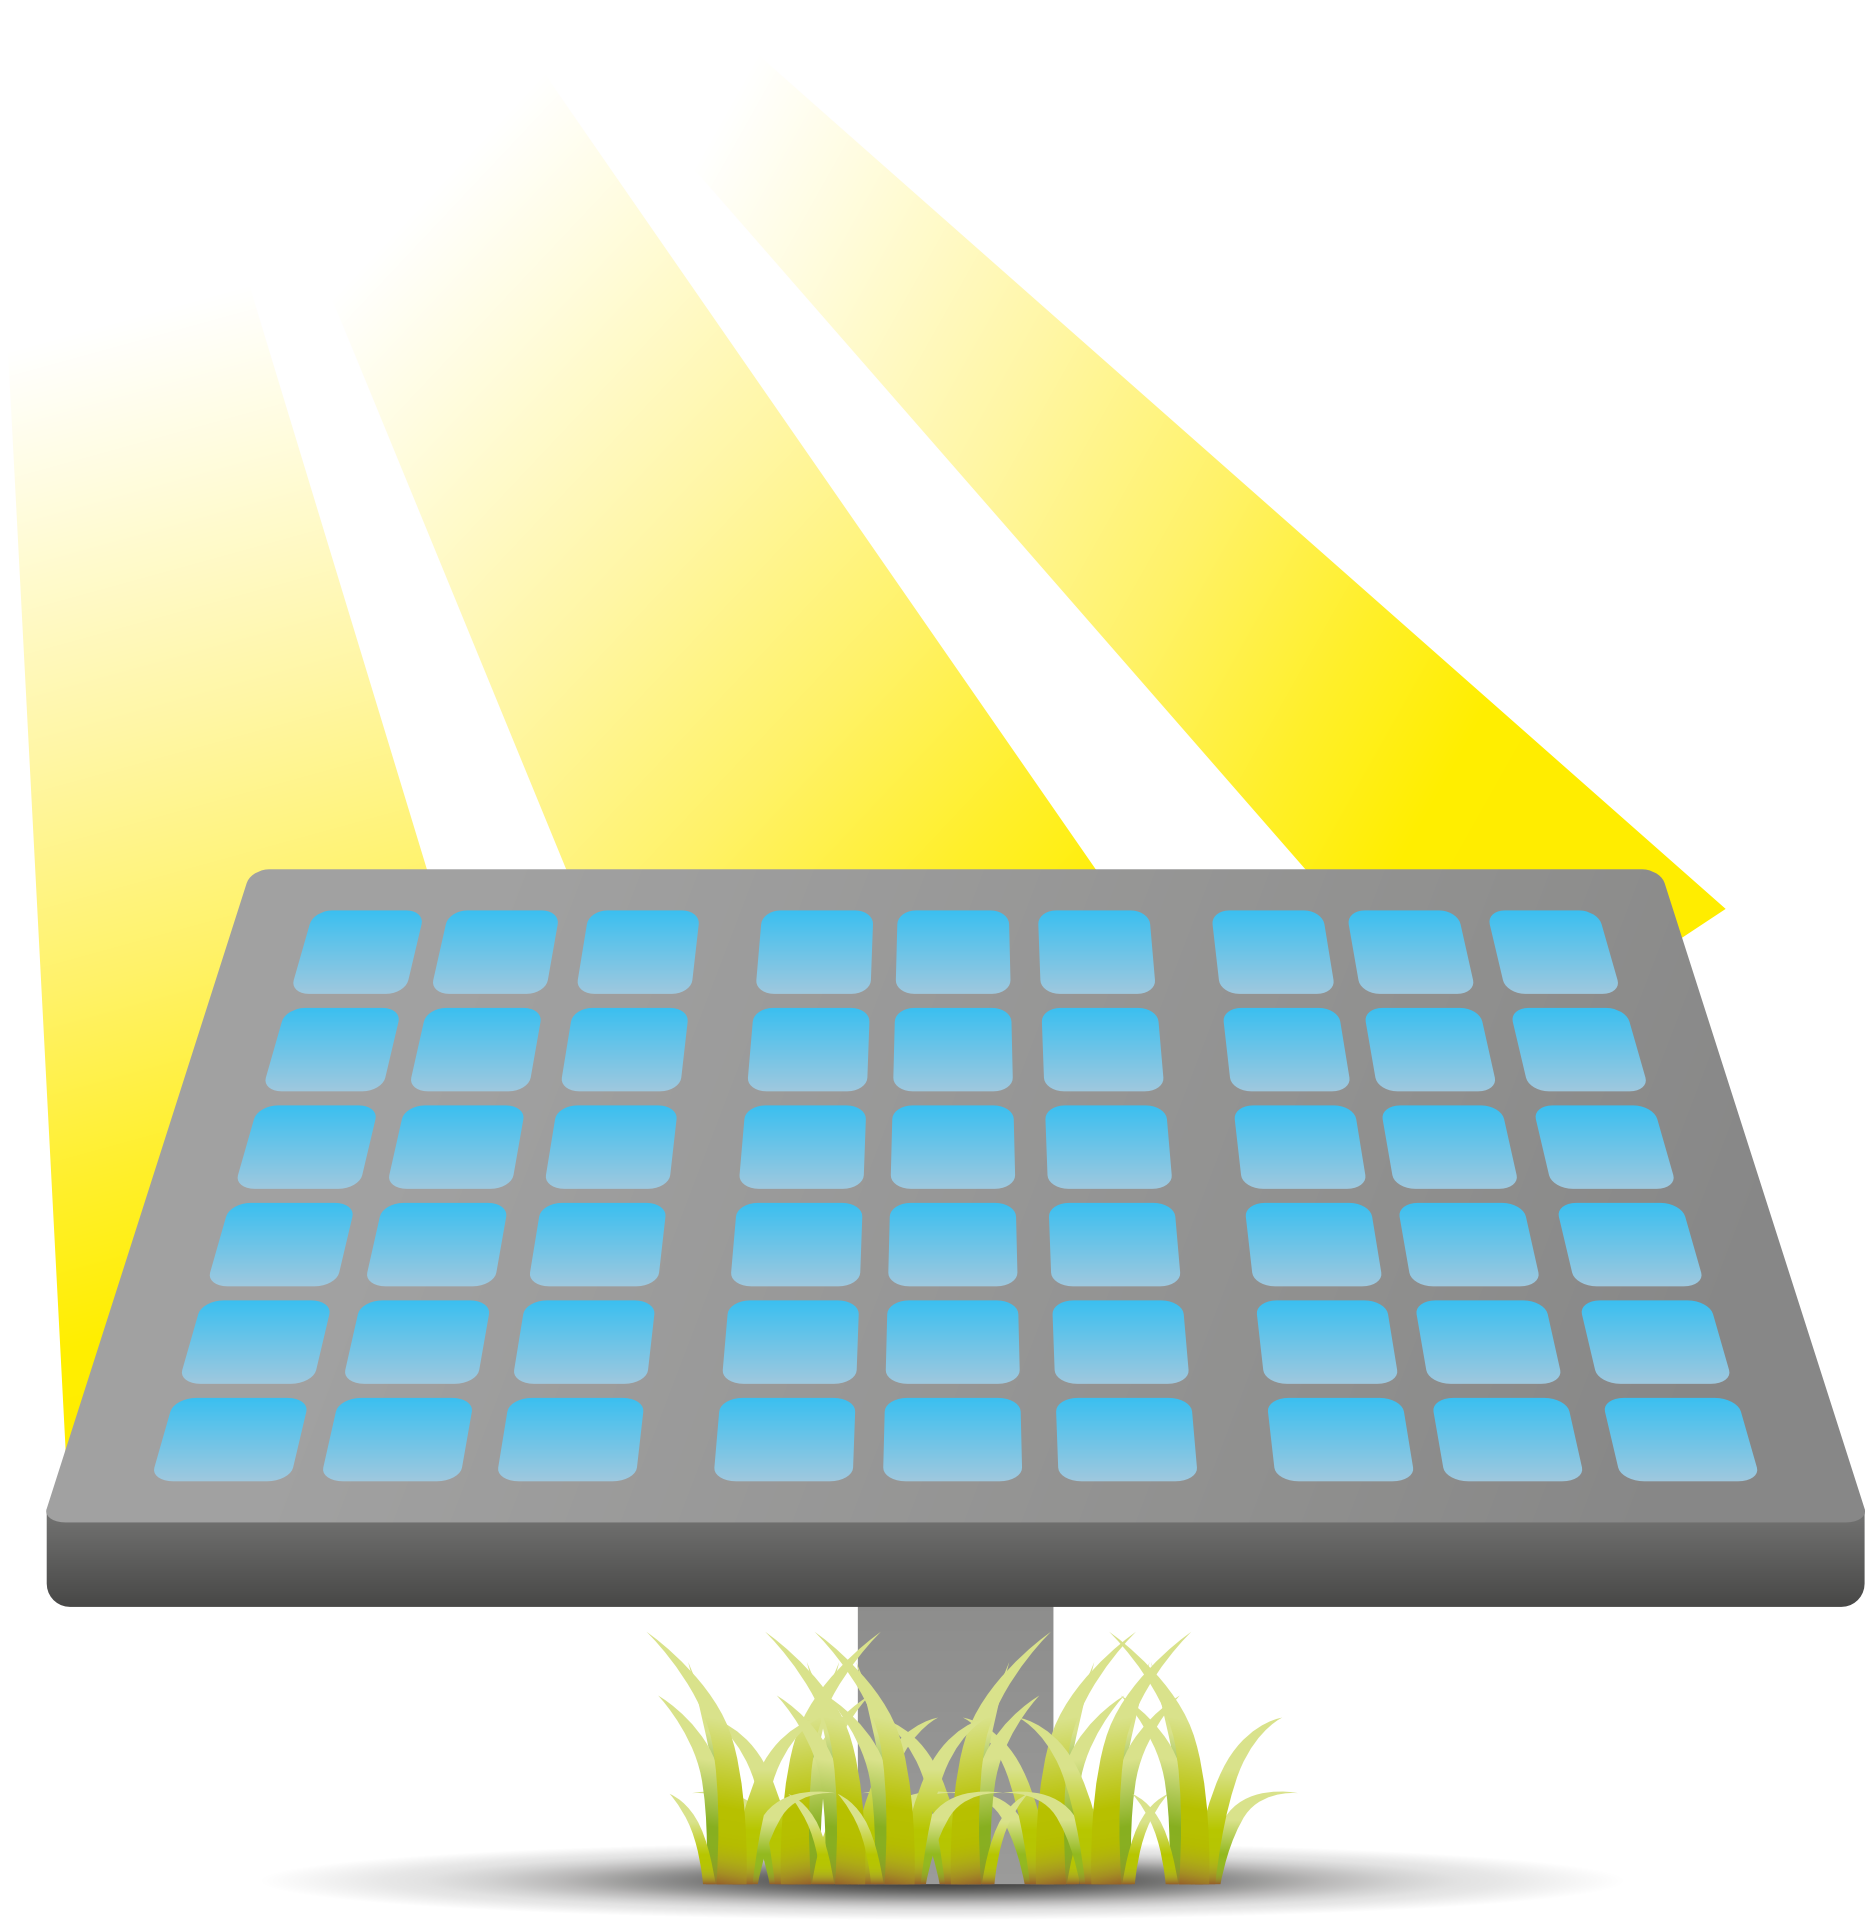 Solar sun clipart clip art freeuse stock Solar Panels Solar energy Solar power Solar cell Clip art - sun png ... clip art freeuse stock